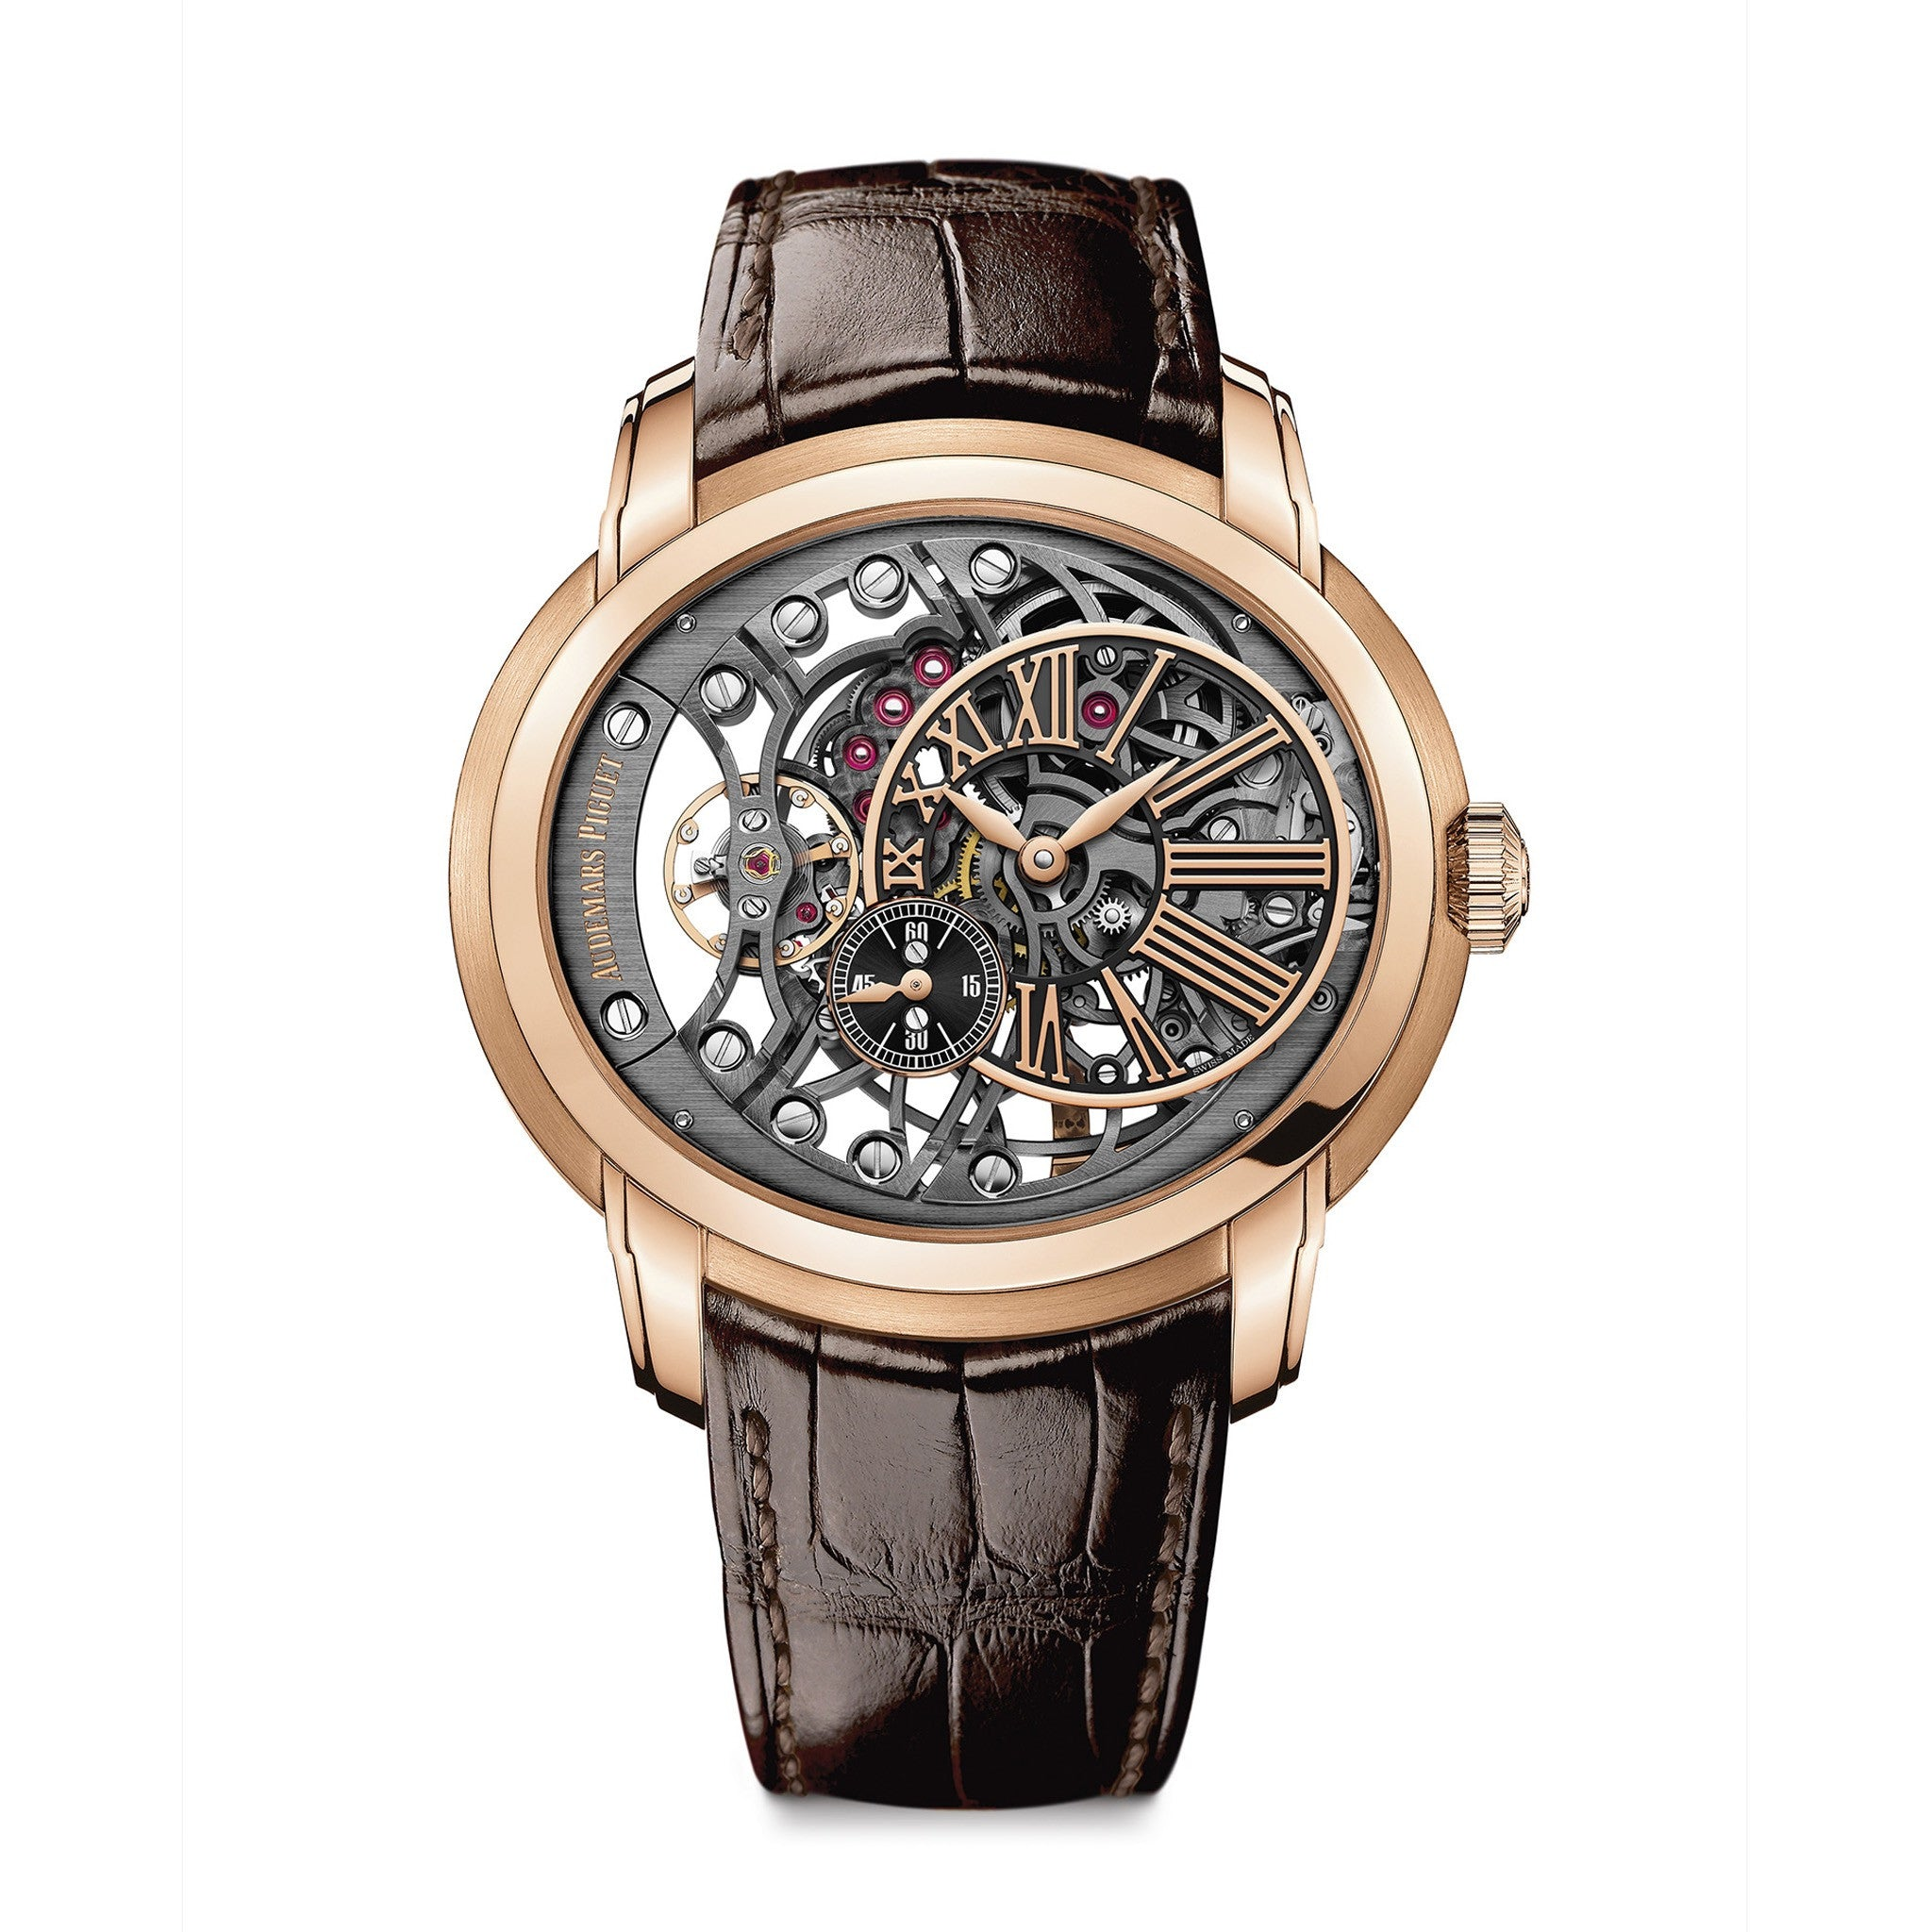 Millenary Openworked 15352OR.OO.D093CR.01 - Audemars Piguet